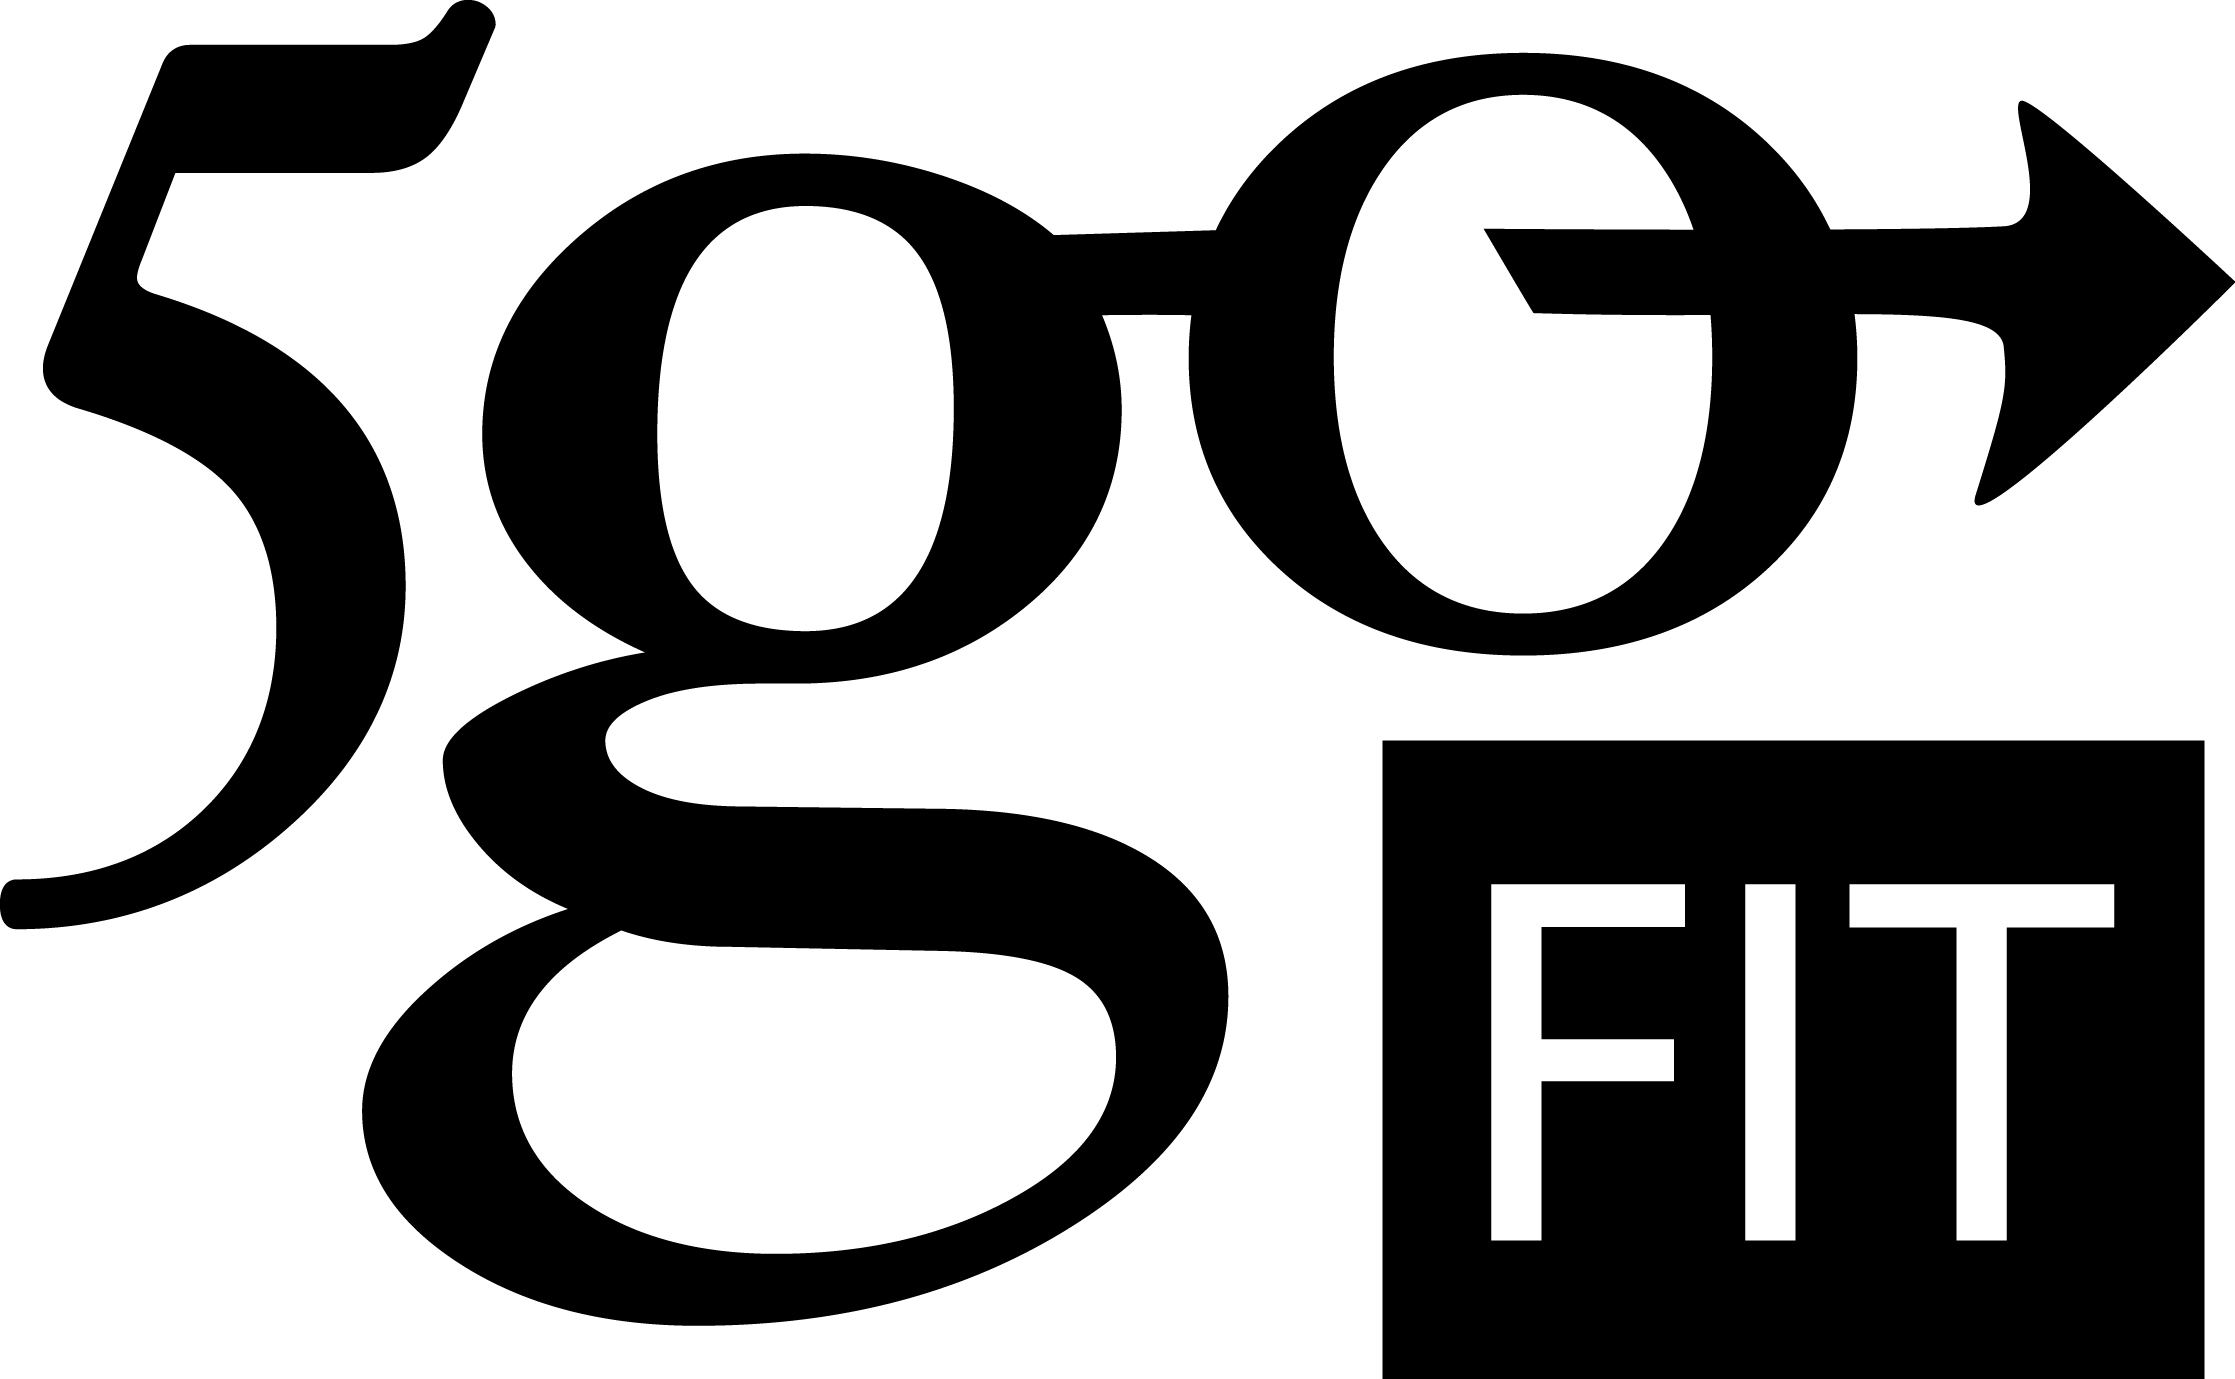 Fivego Fit | Personal Training and Wellness